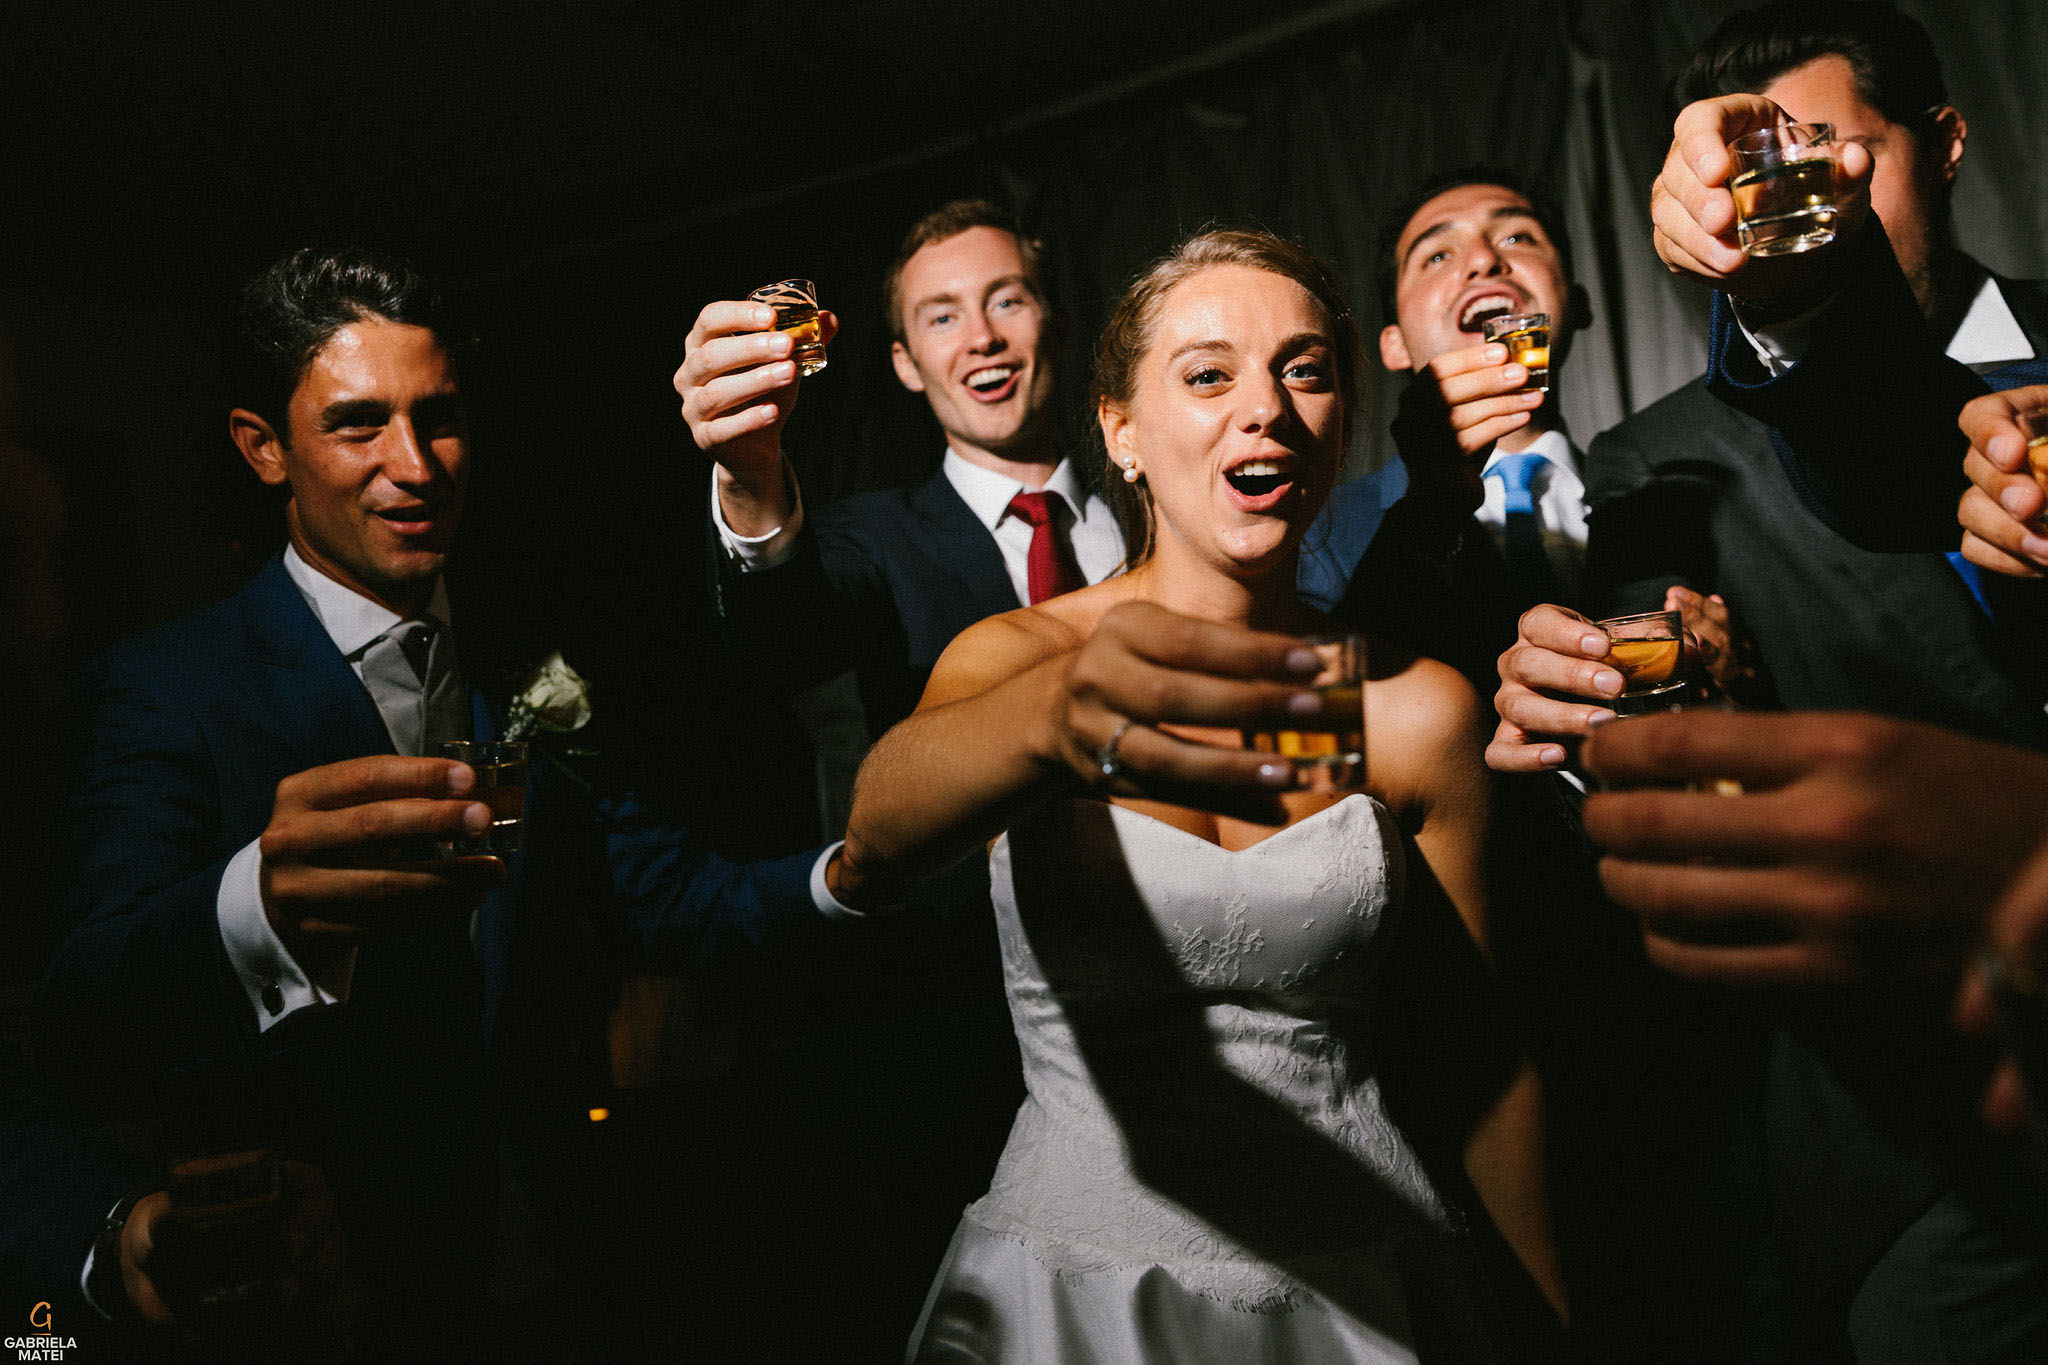 Bride drinking shots with wedding guests during wedding reception party